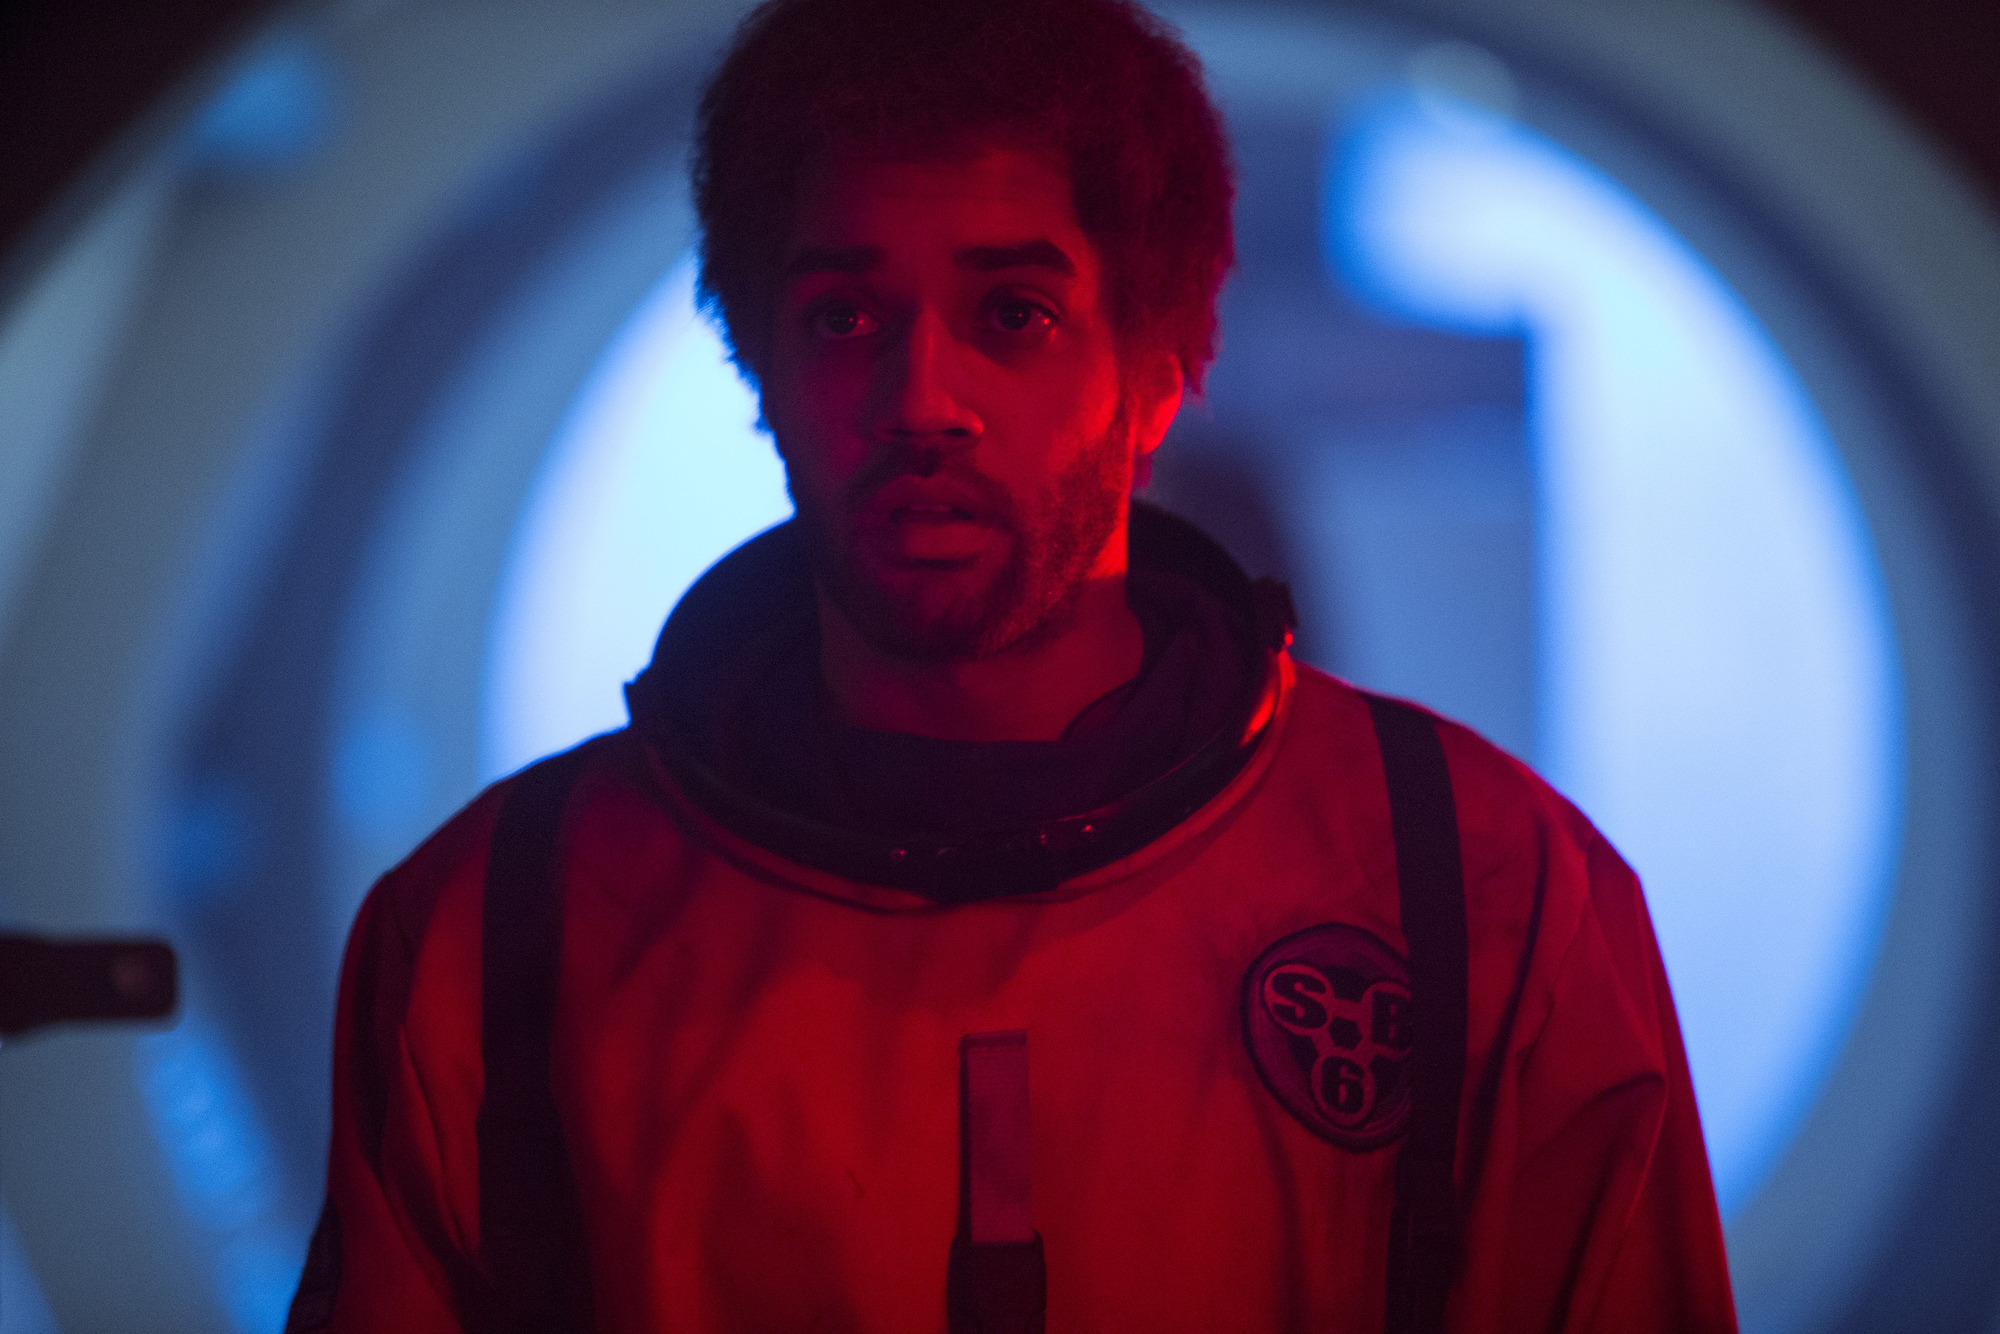 Doctor Who: Listen starring Samuel Anderson as Danny Pink and Orson Pink